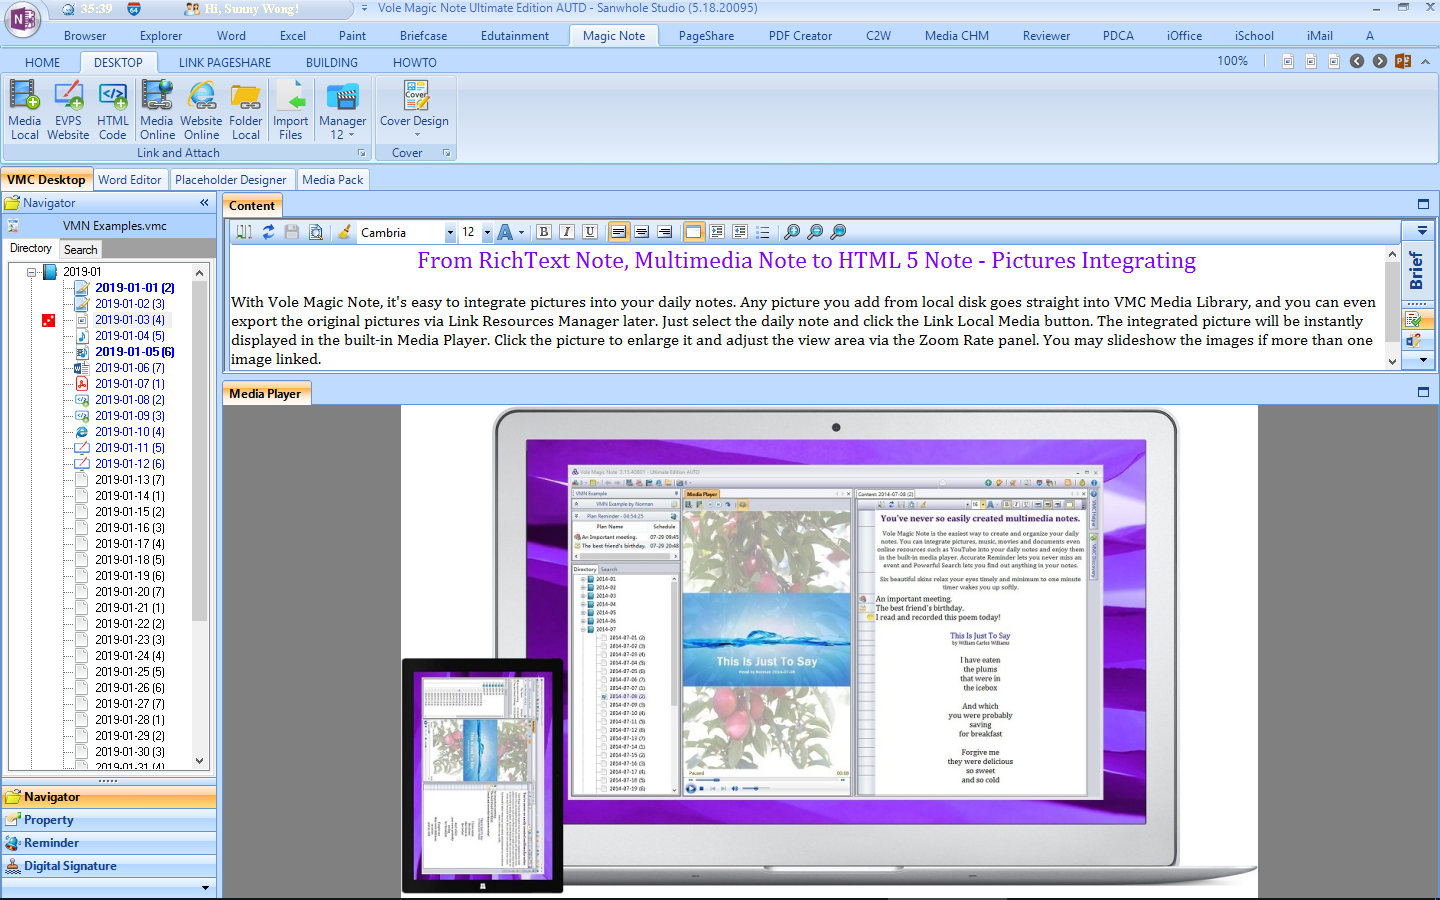 Writing and Journaling Software, Vole Magic Note Professional Edition Screenshot